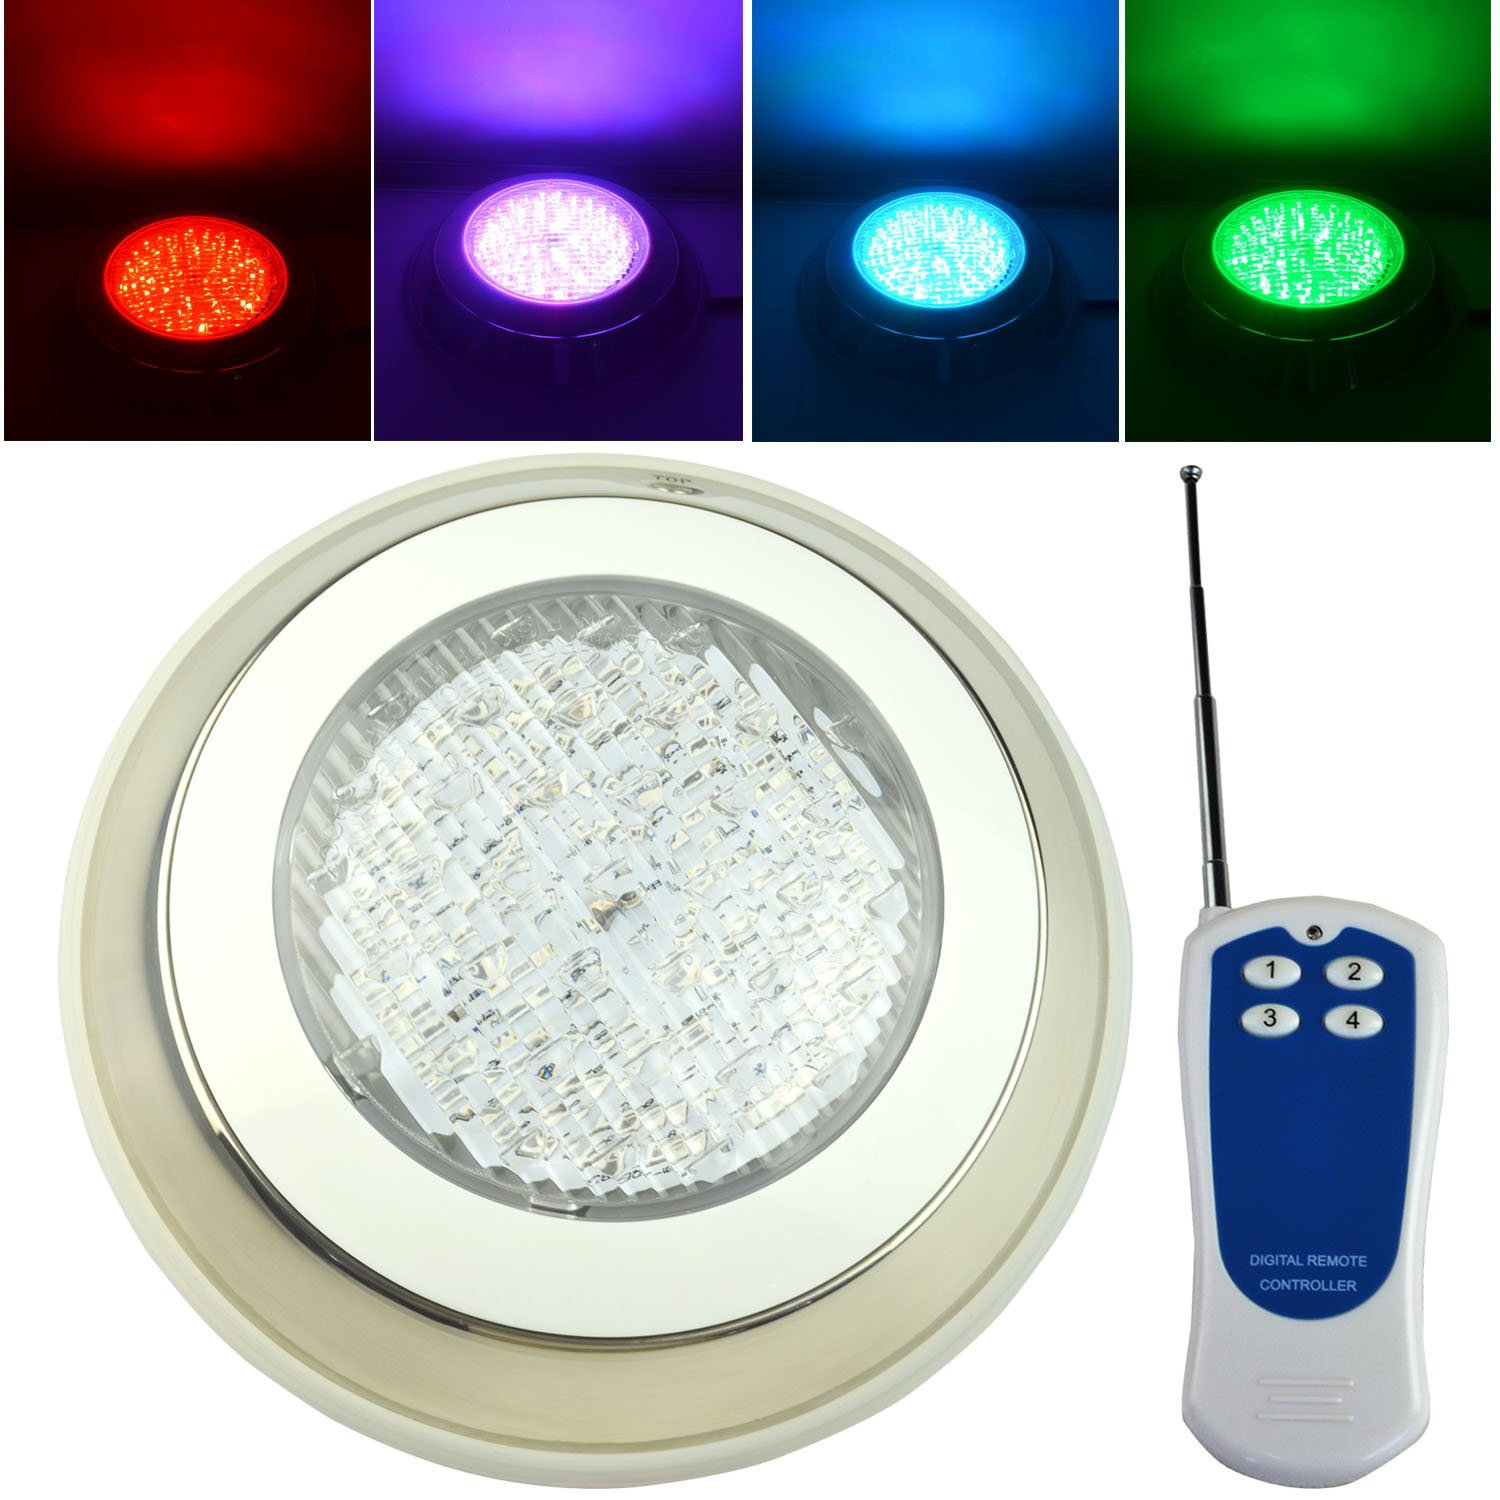 Aliyeah 18W 252 leds 12 Volt RGB Color Changing LED Underwater Light with Remote, Wall Mounted with 7ft Power Cord, Stainless Steel IP68 Waterproof (EXPRESS Shipping)